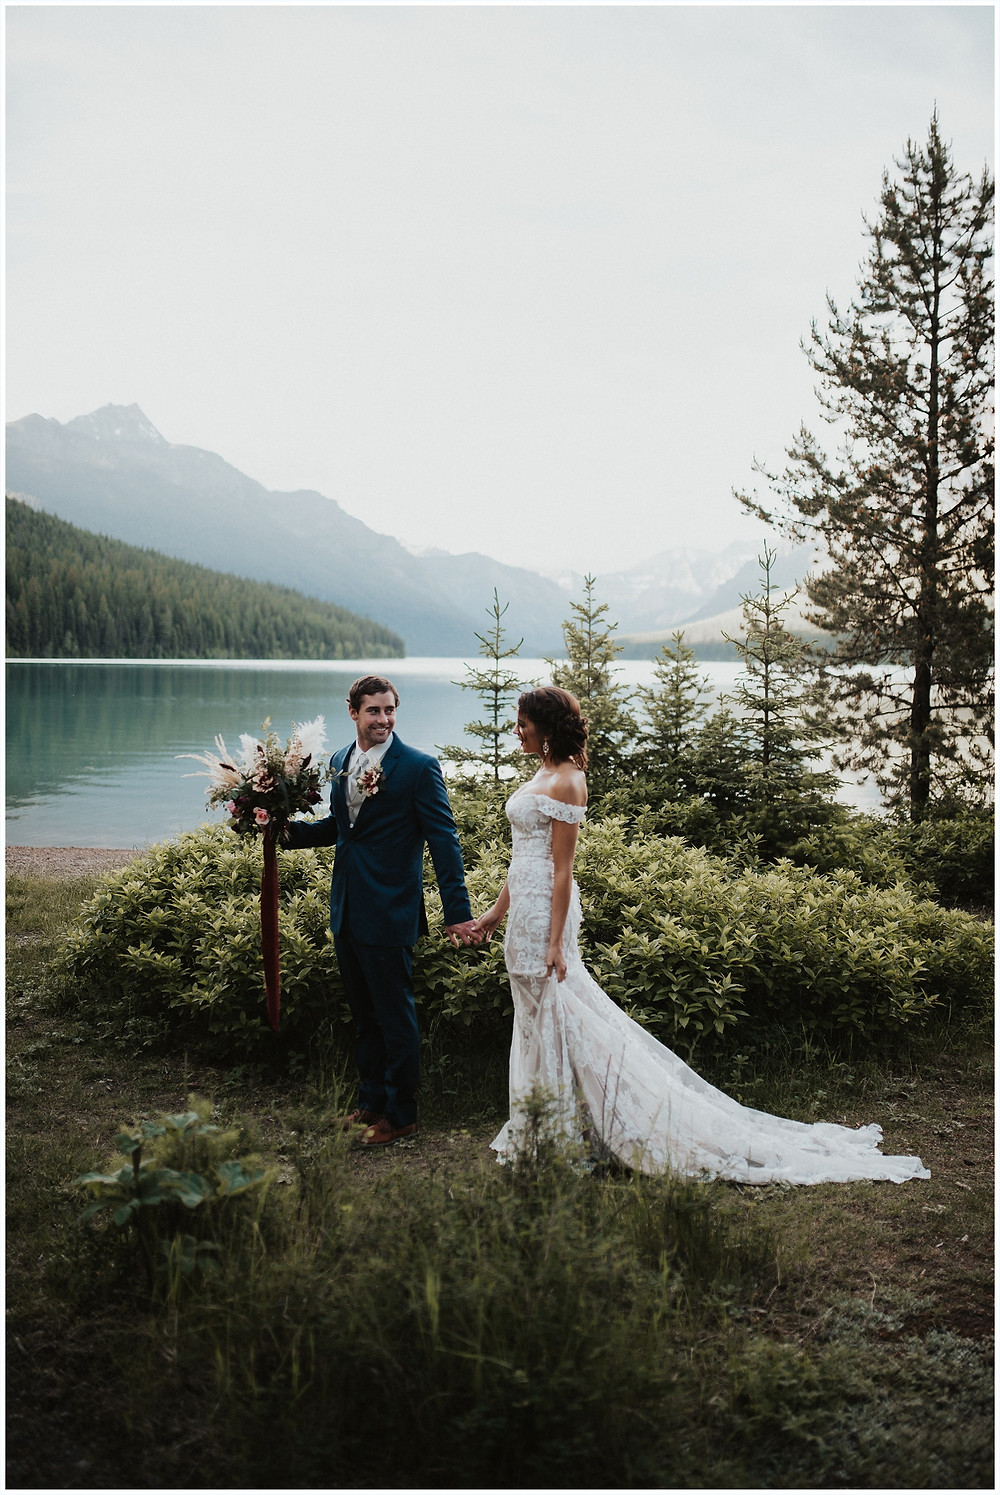 bouquet inspiration, bridal bouquet, Glacier National Park, Elegant and Romantic Styled Elopement, Katy Shay Photo, Montana Wedding and Elopement Photographer, Glacier National Park Photographer, Moody photos, glamorous wedding, Navy, maroon, coral, lace wedding dress, Bozeman photographer, Missoula photographer, Kalispell photographer, Glacier NP, Bowman Lake, styled shoot, elopement, elopement inspiration, bridal portraits, bridal hair and makeup, bride and groom photos, mountain elopement